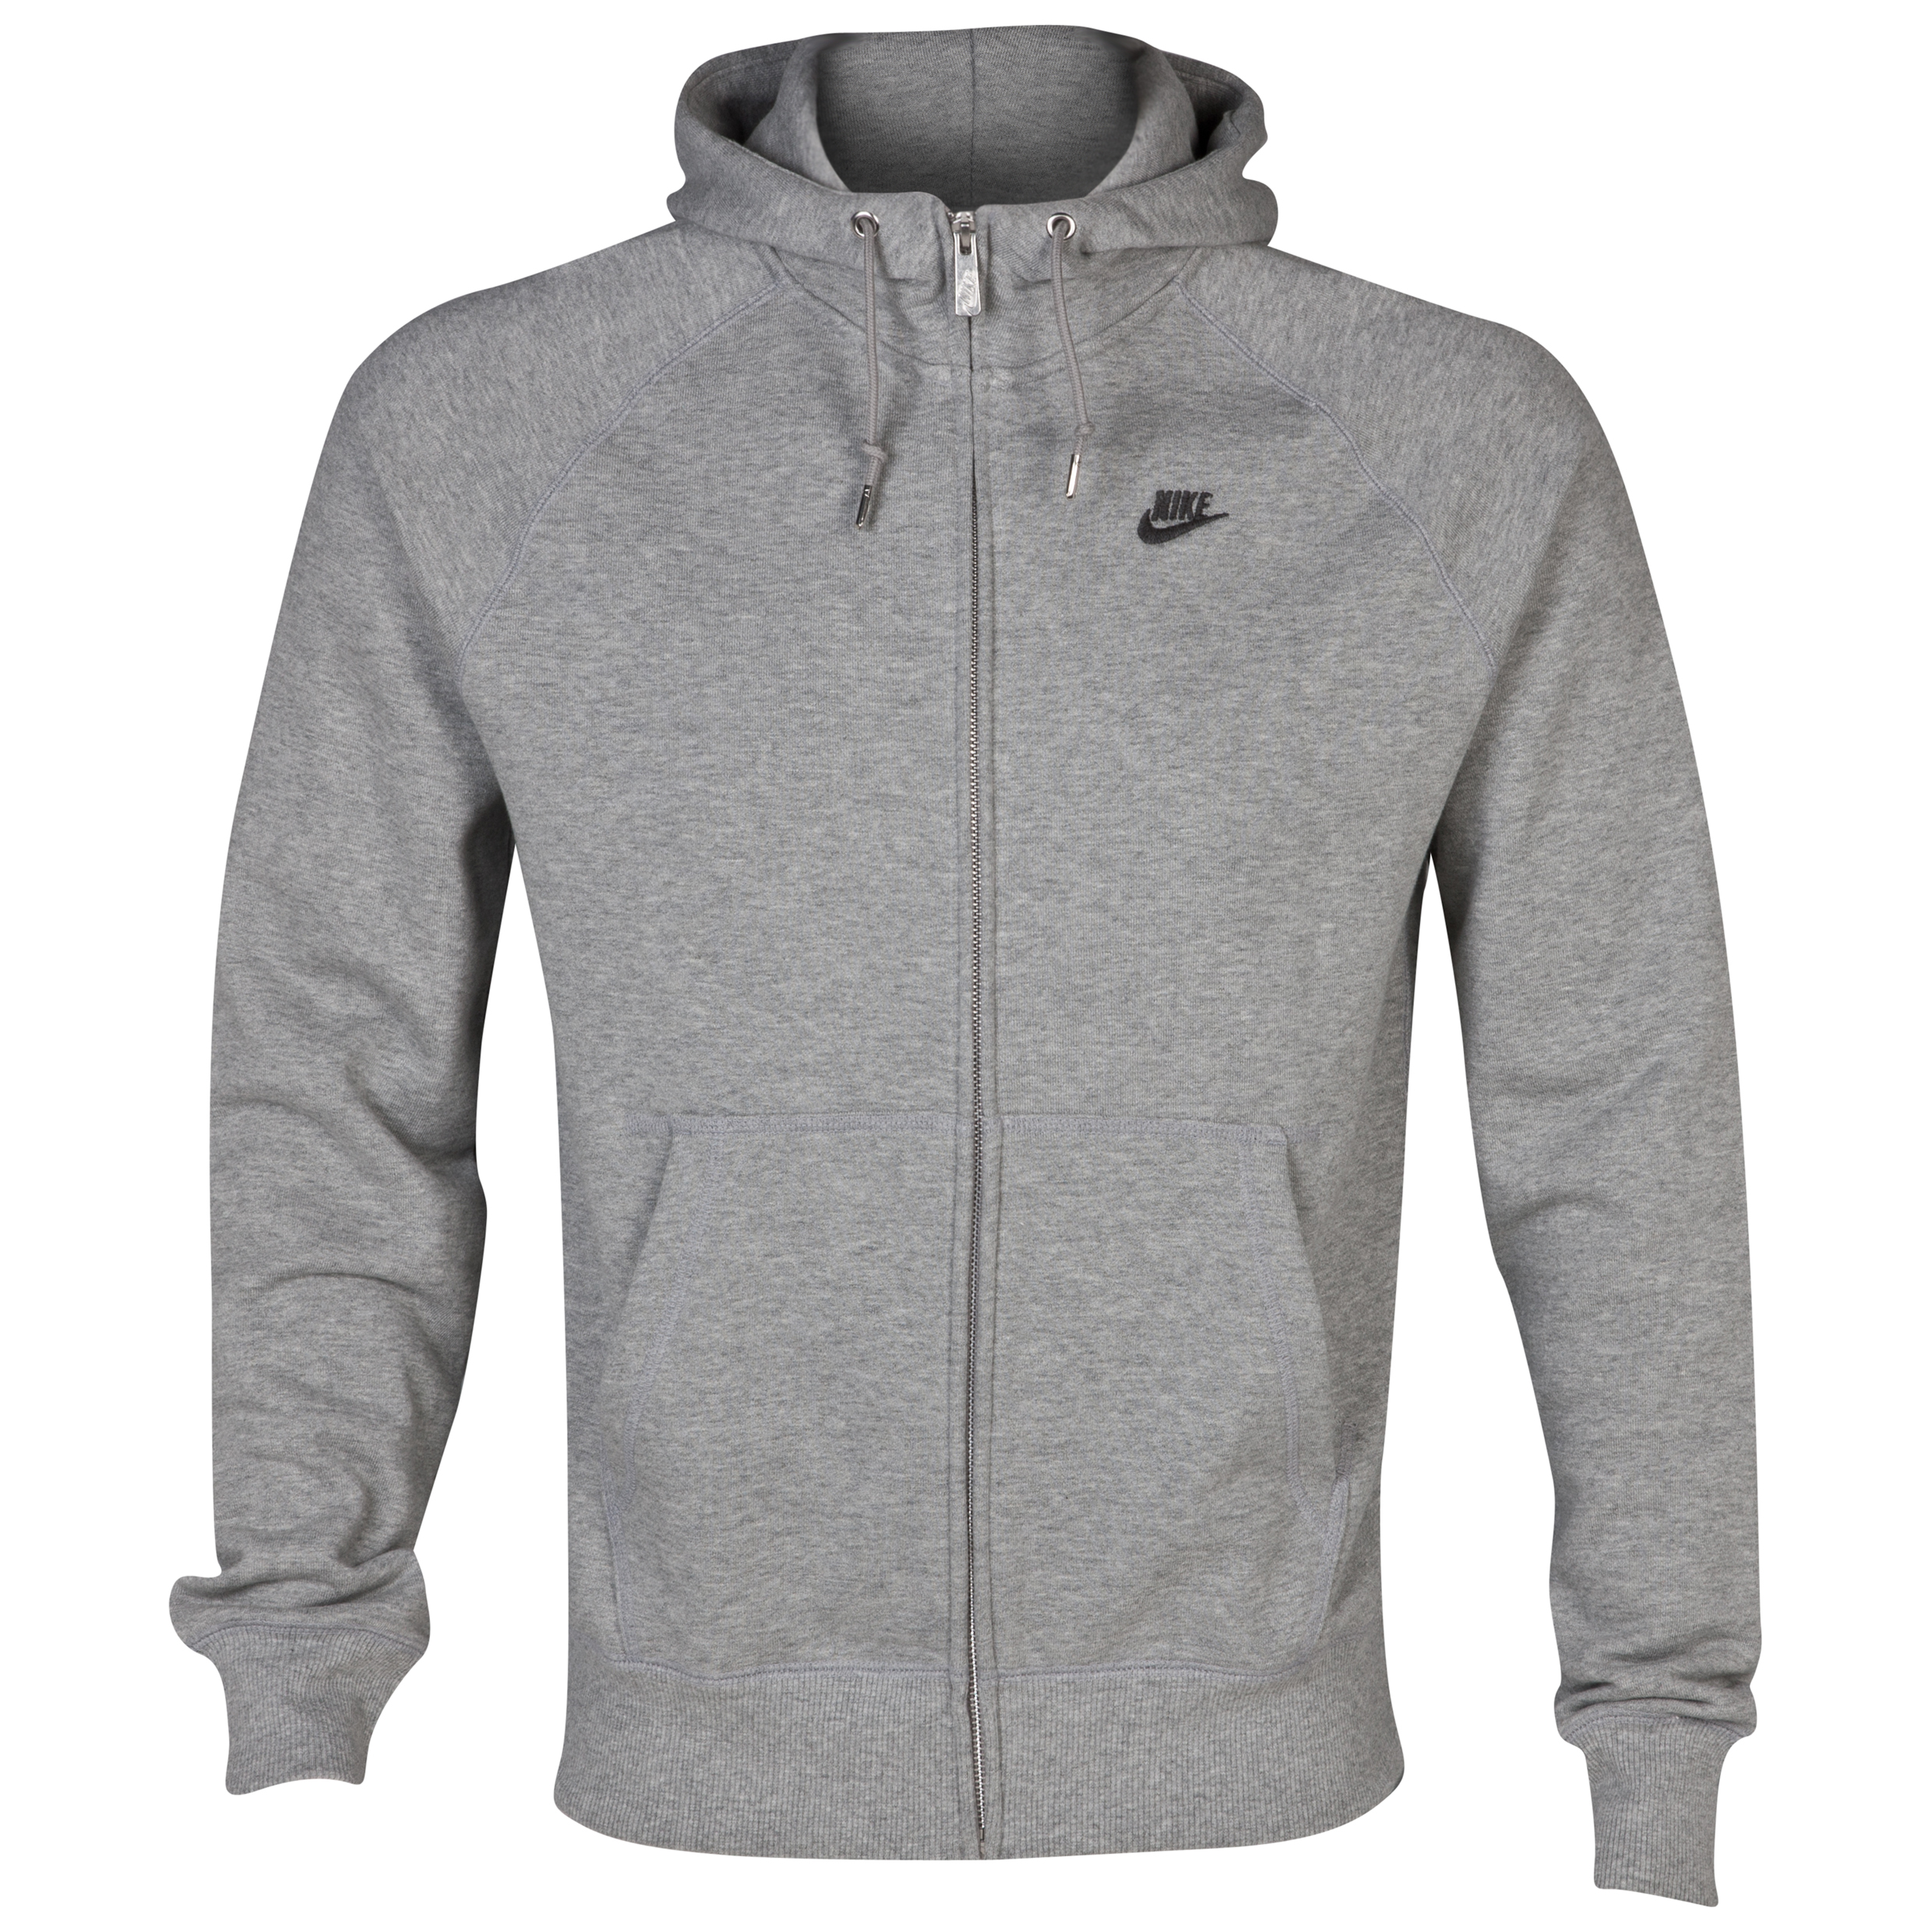 Nike HBR FT FZ Hoody - Dark Grey Heather